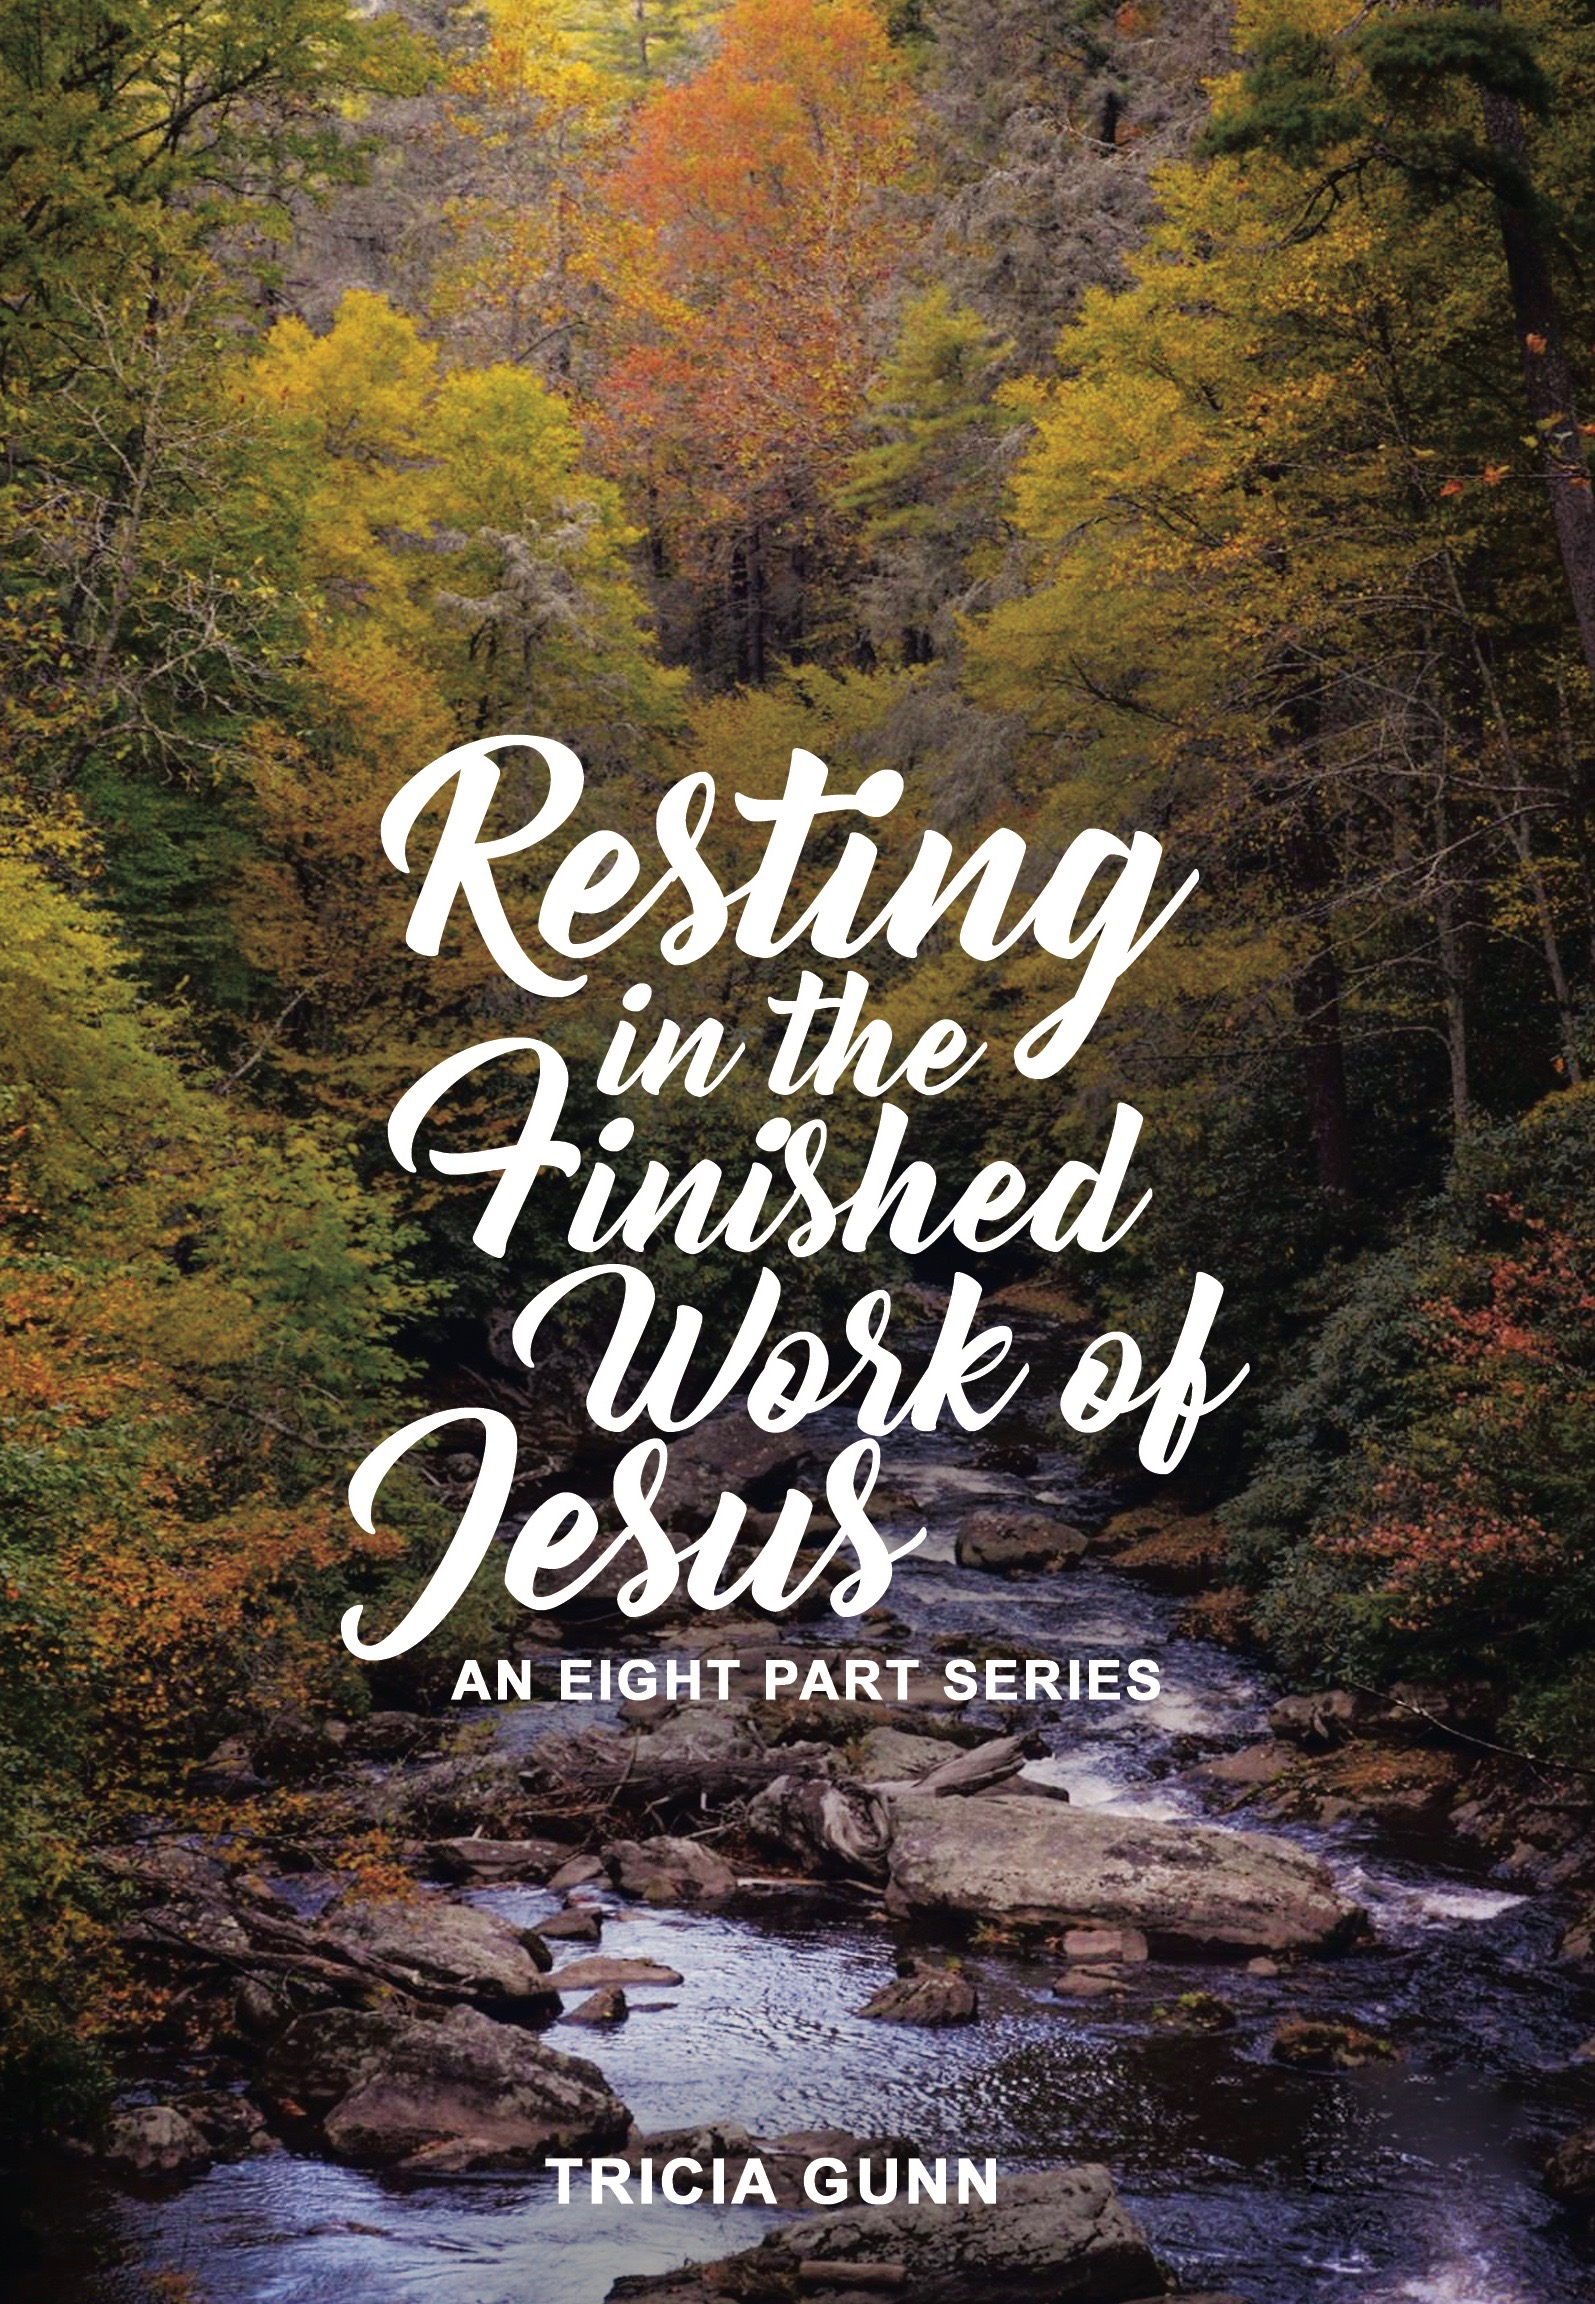 Resting-In-The-Finished-Work-of-Jesus_CD copy 2.jpg